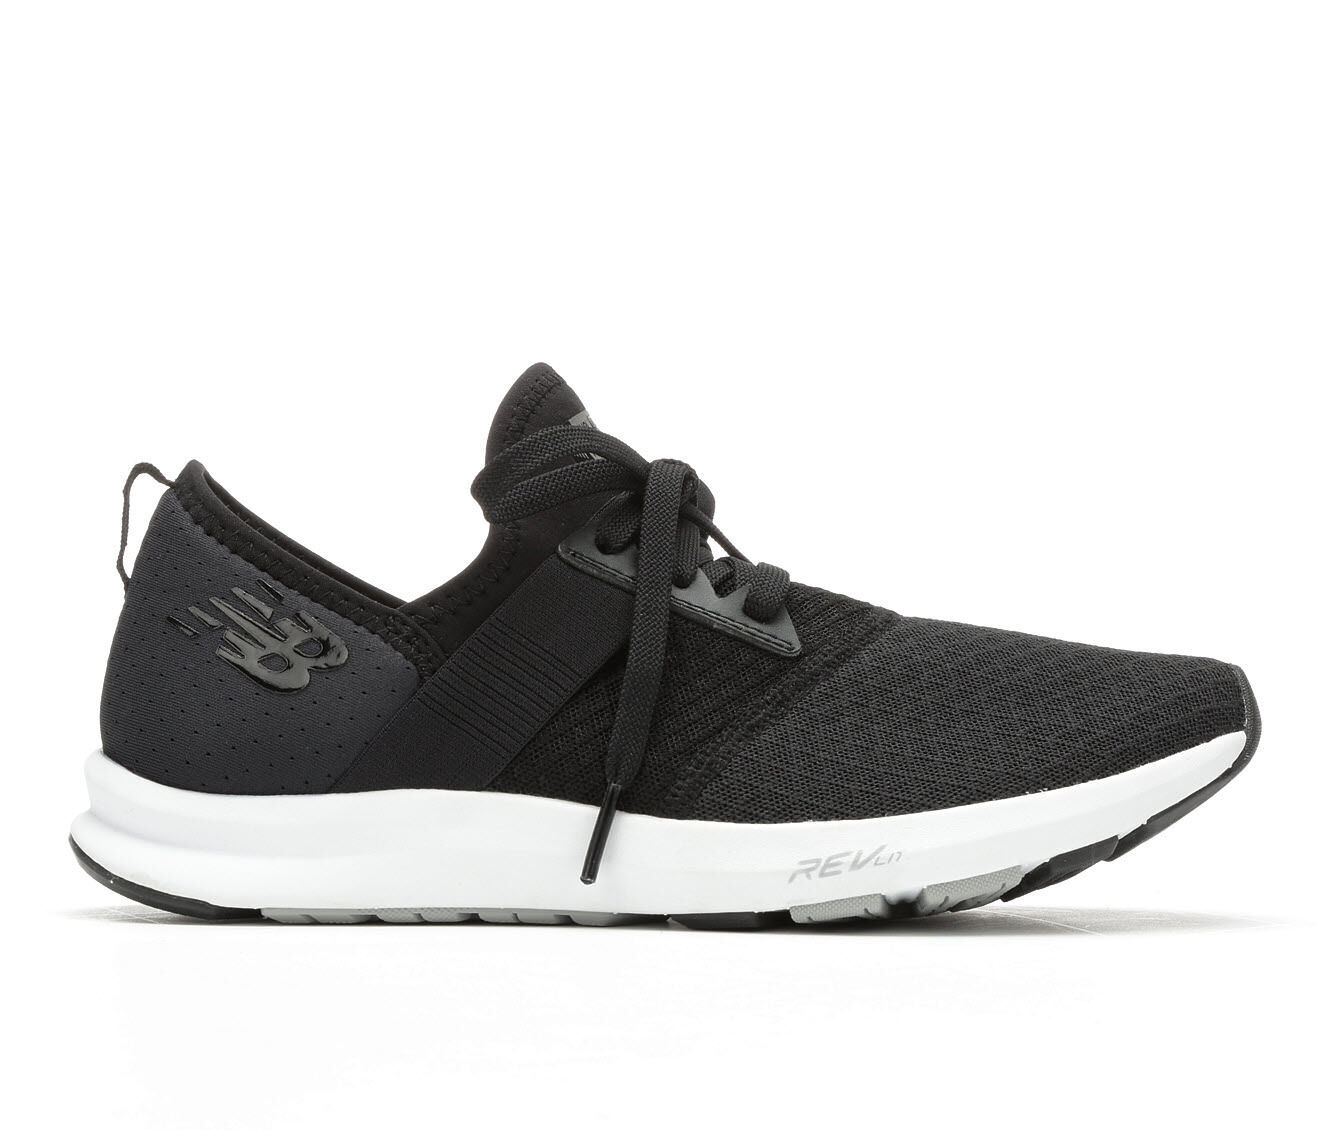 Women's New Balance FuelCore Nergize Sneakers Black/White